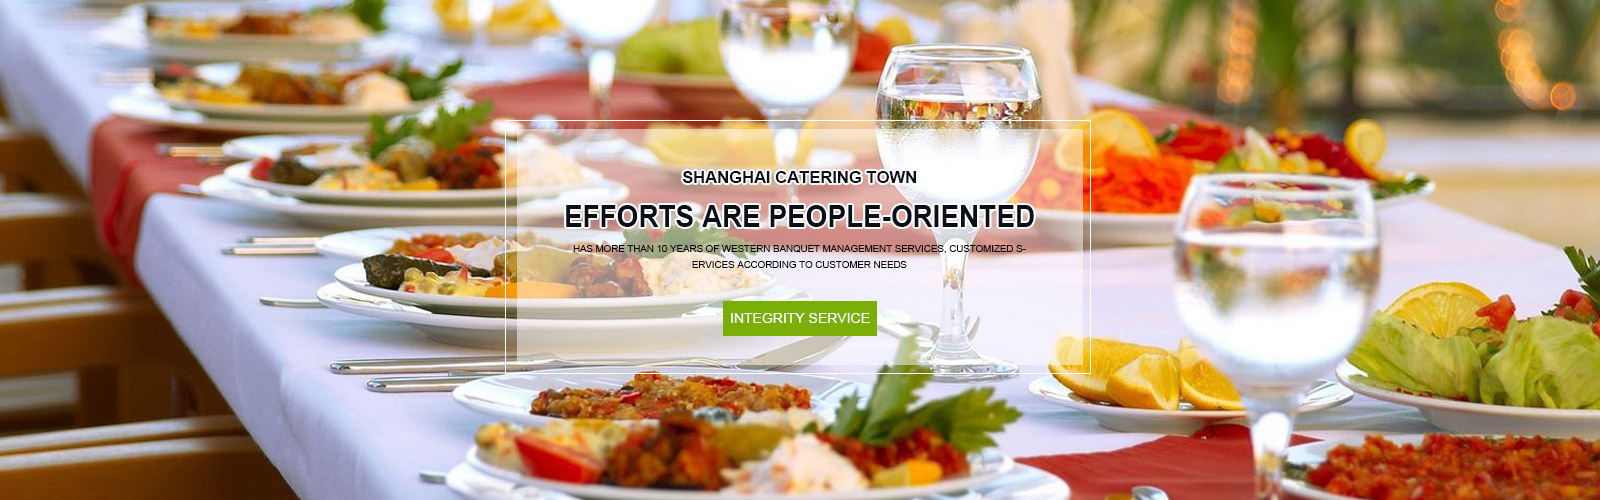 SHANGHAI CATERING TOWN